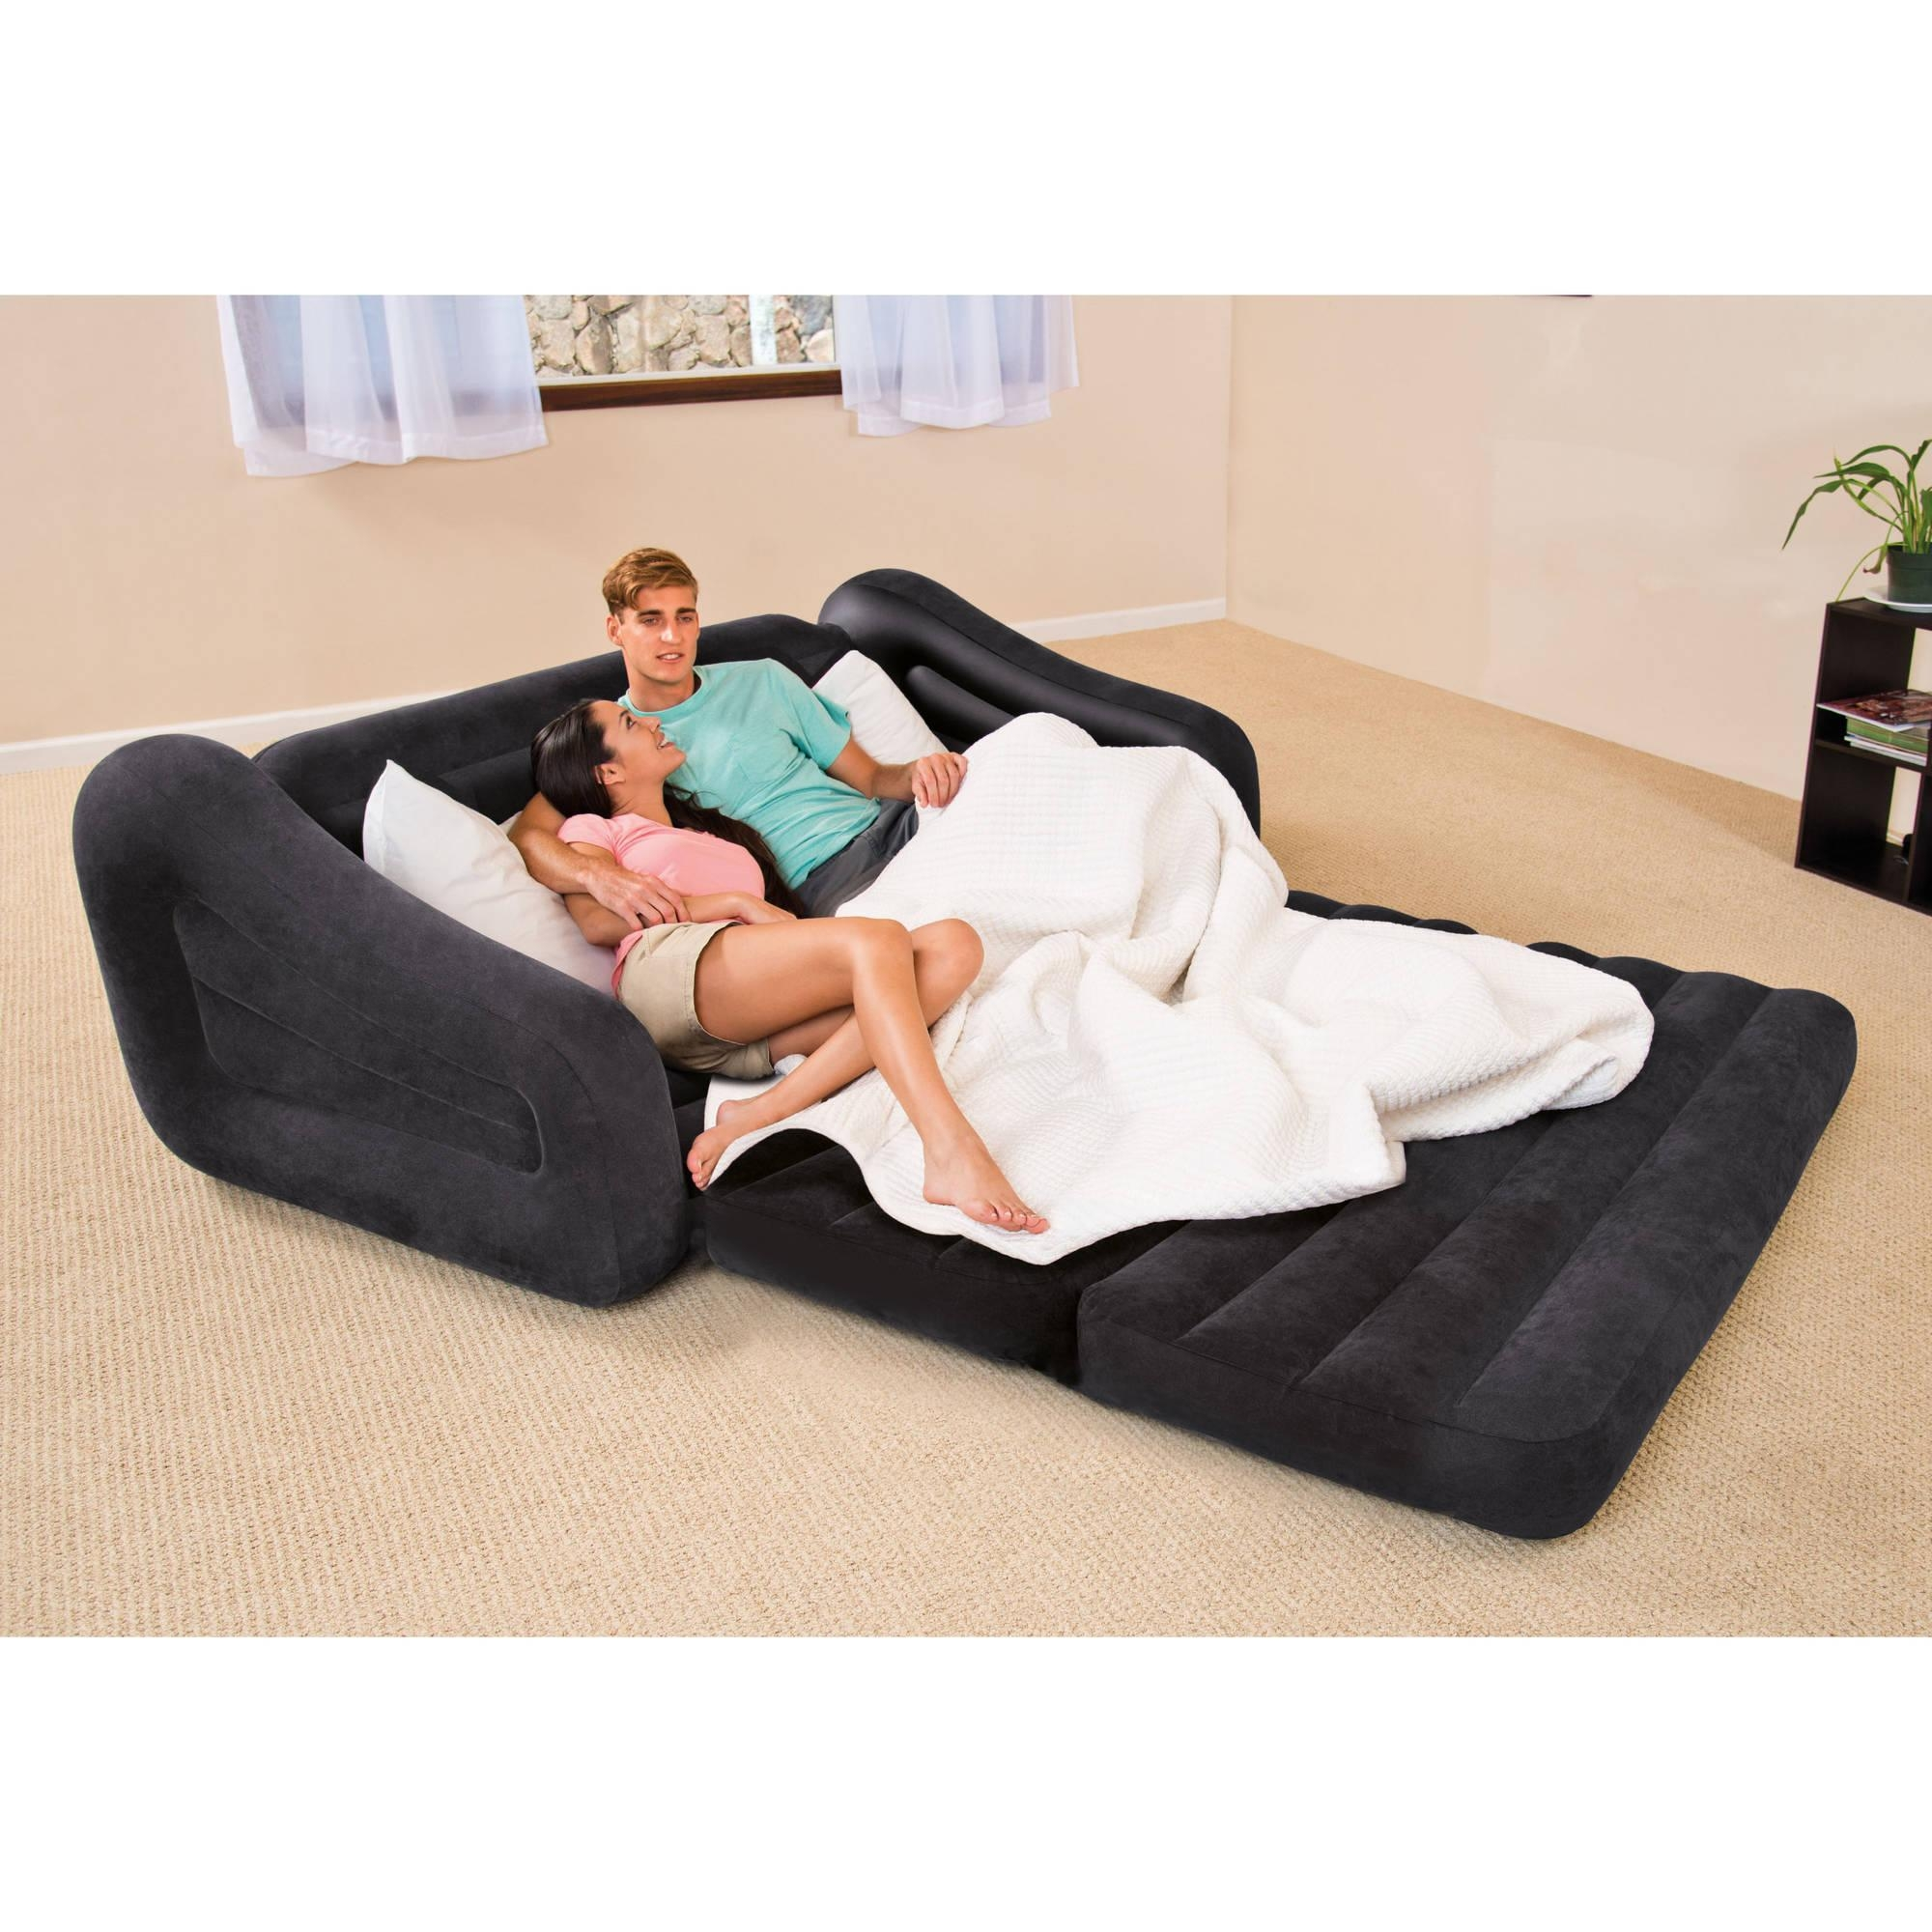 intex inflatable sofa kmart couches sofas south africa 20 43 choices of air beds ideas